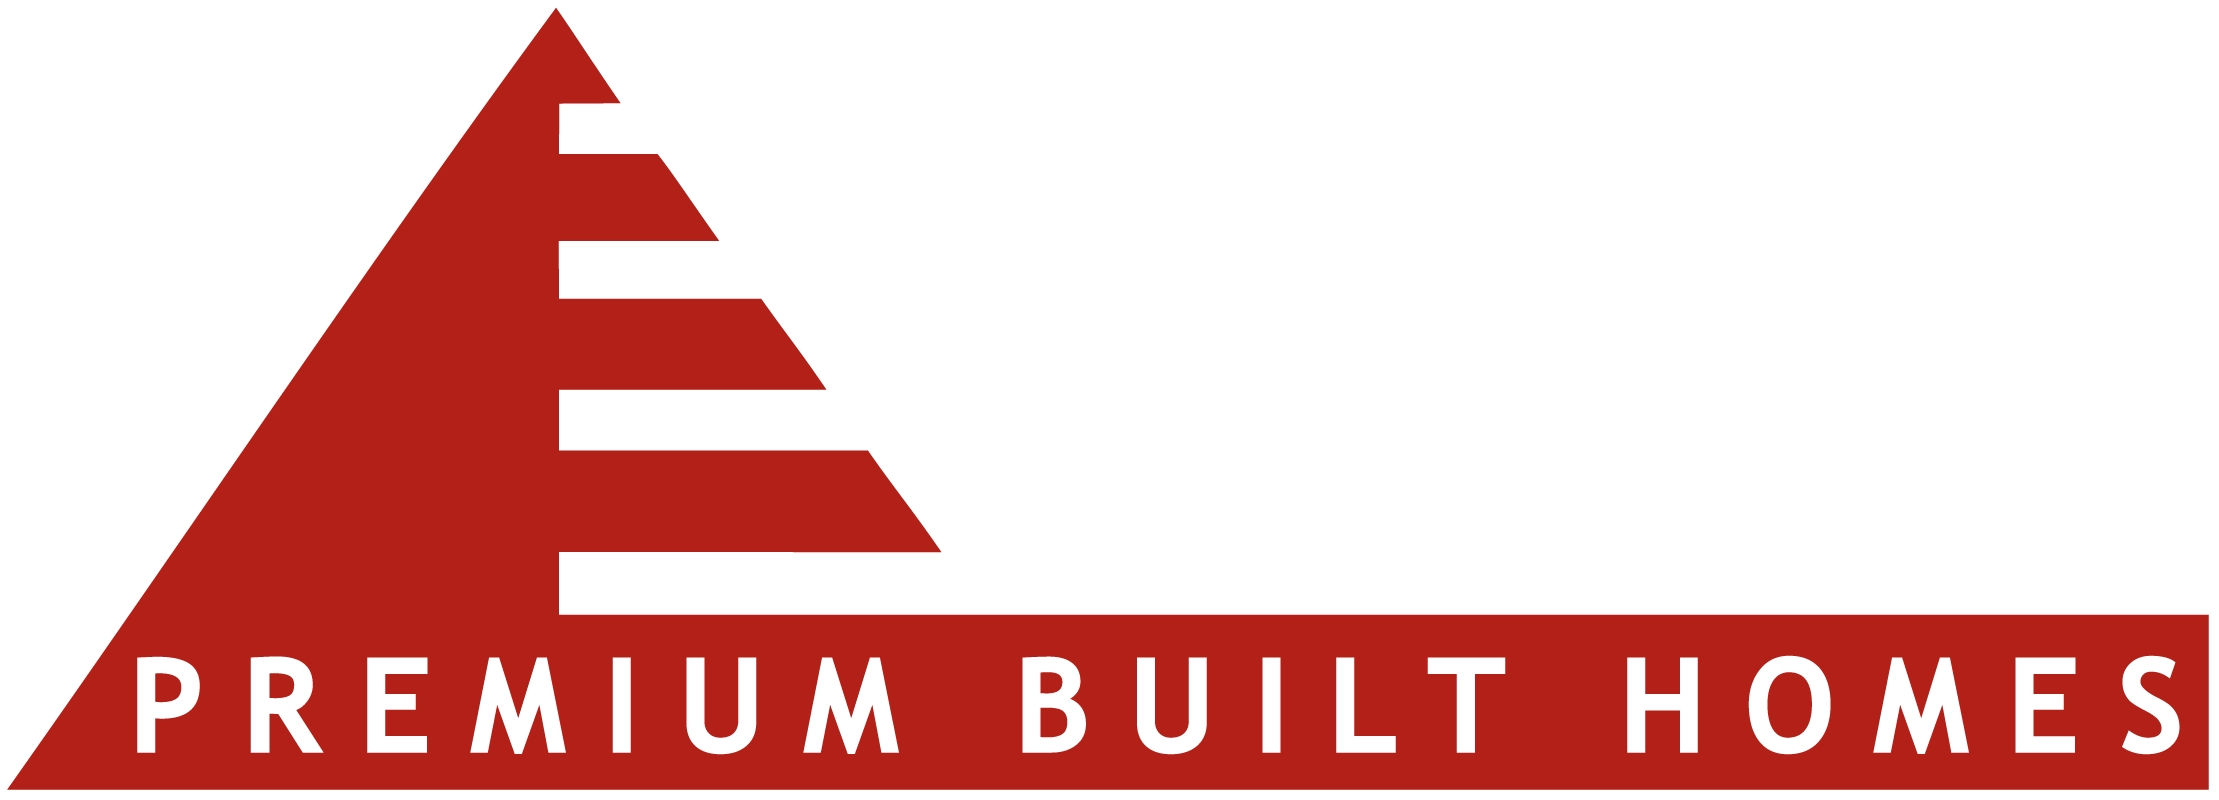 Tab Premium Built Homes New Bern and Greenville Builder